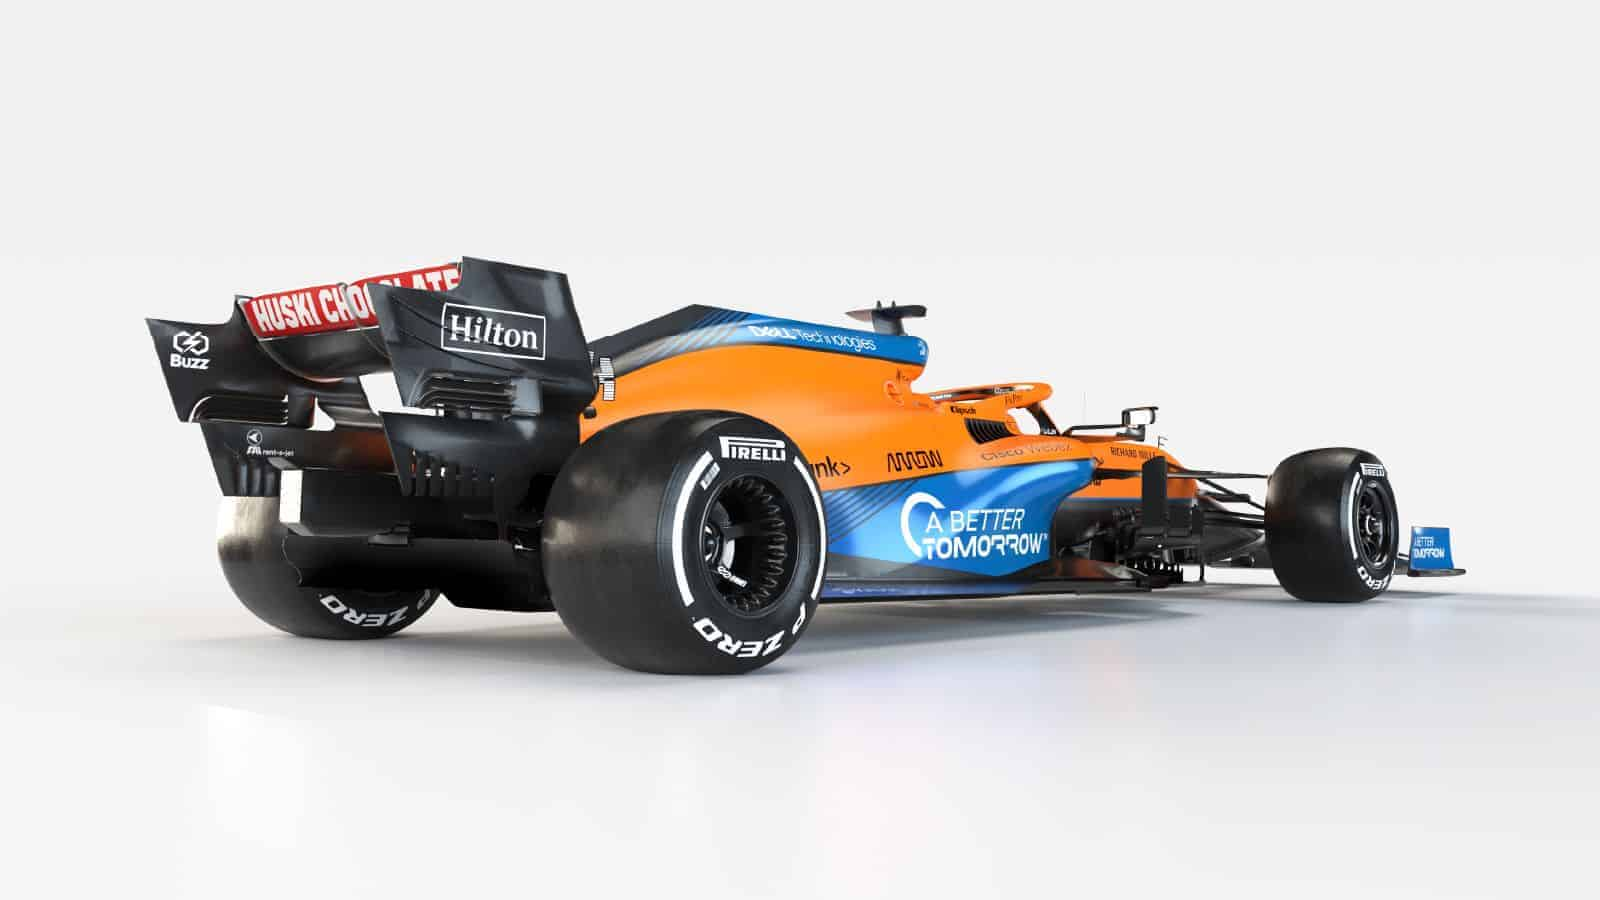 2021 McLaren MCL35M Mercedes launch studio rear side view frontal Photo McLaren